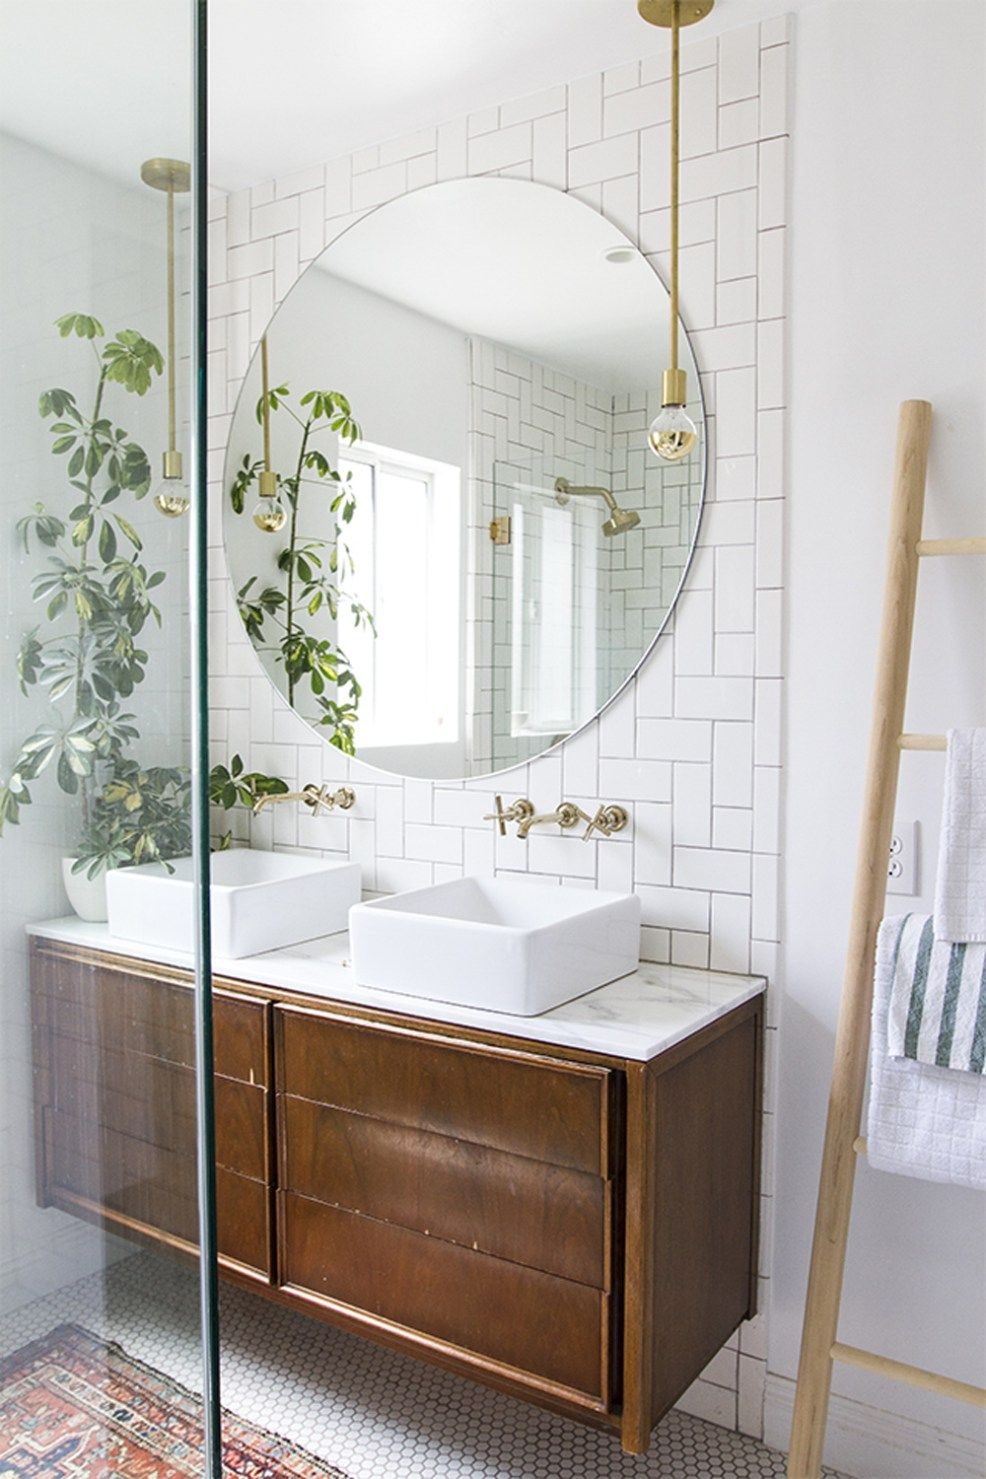 Home page in vanities pinterest bathroom bath and